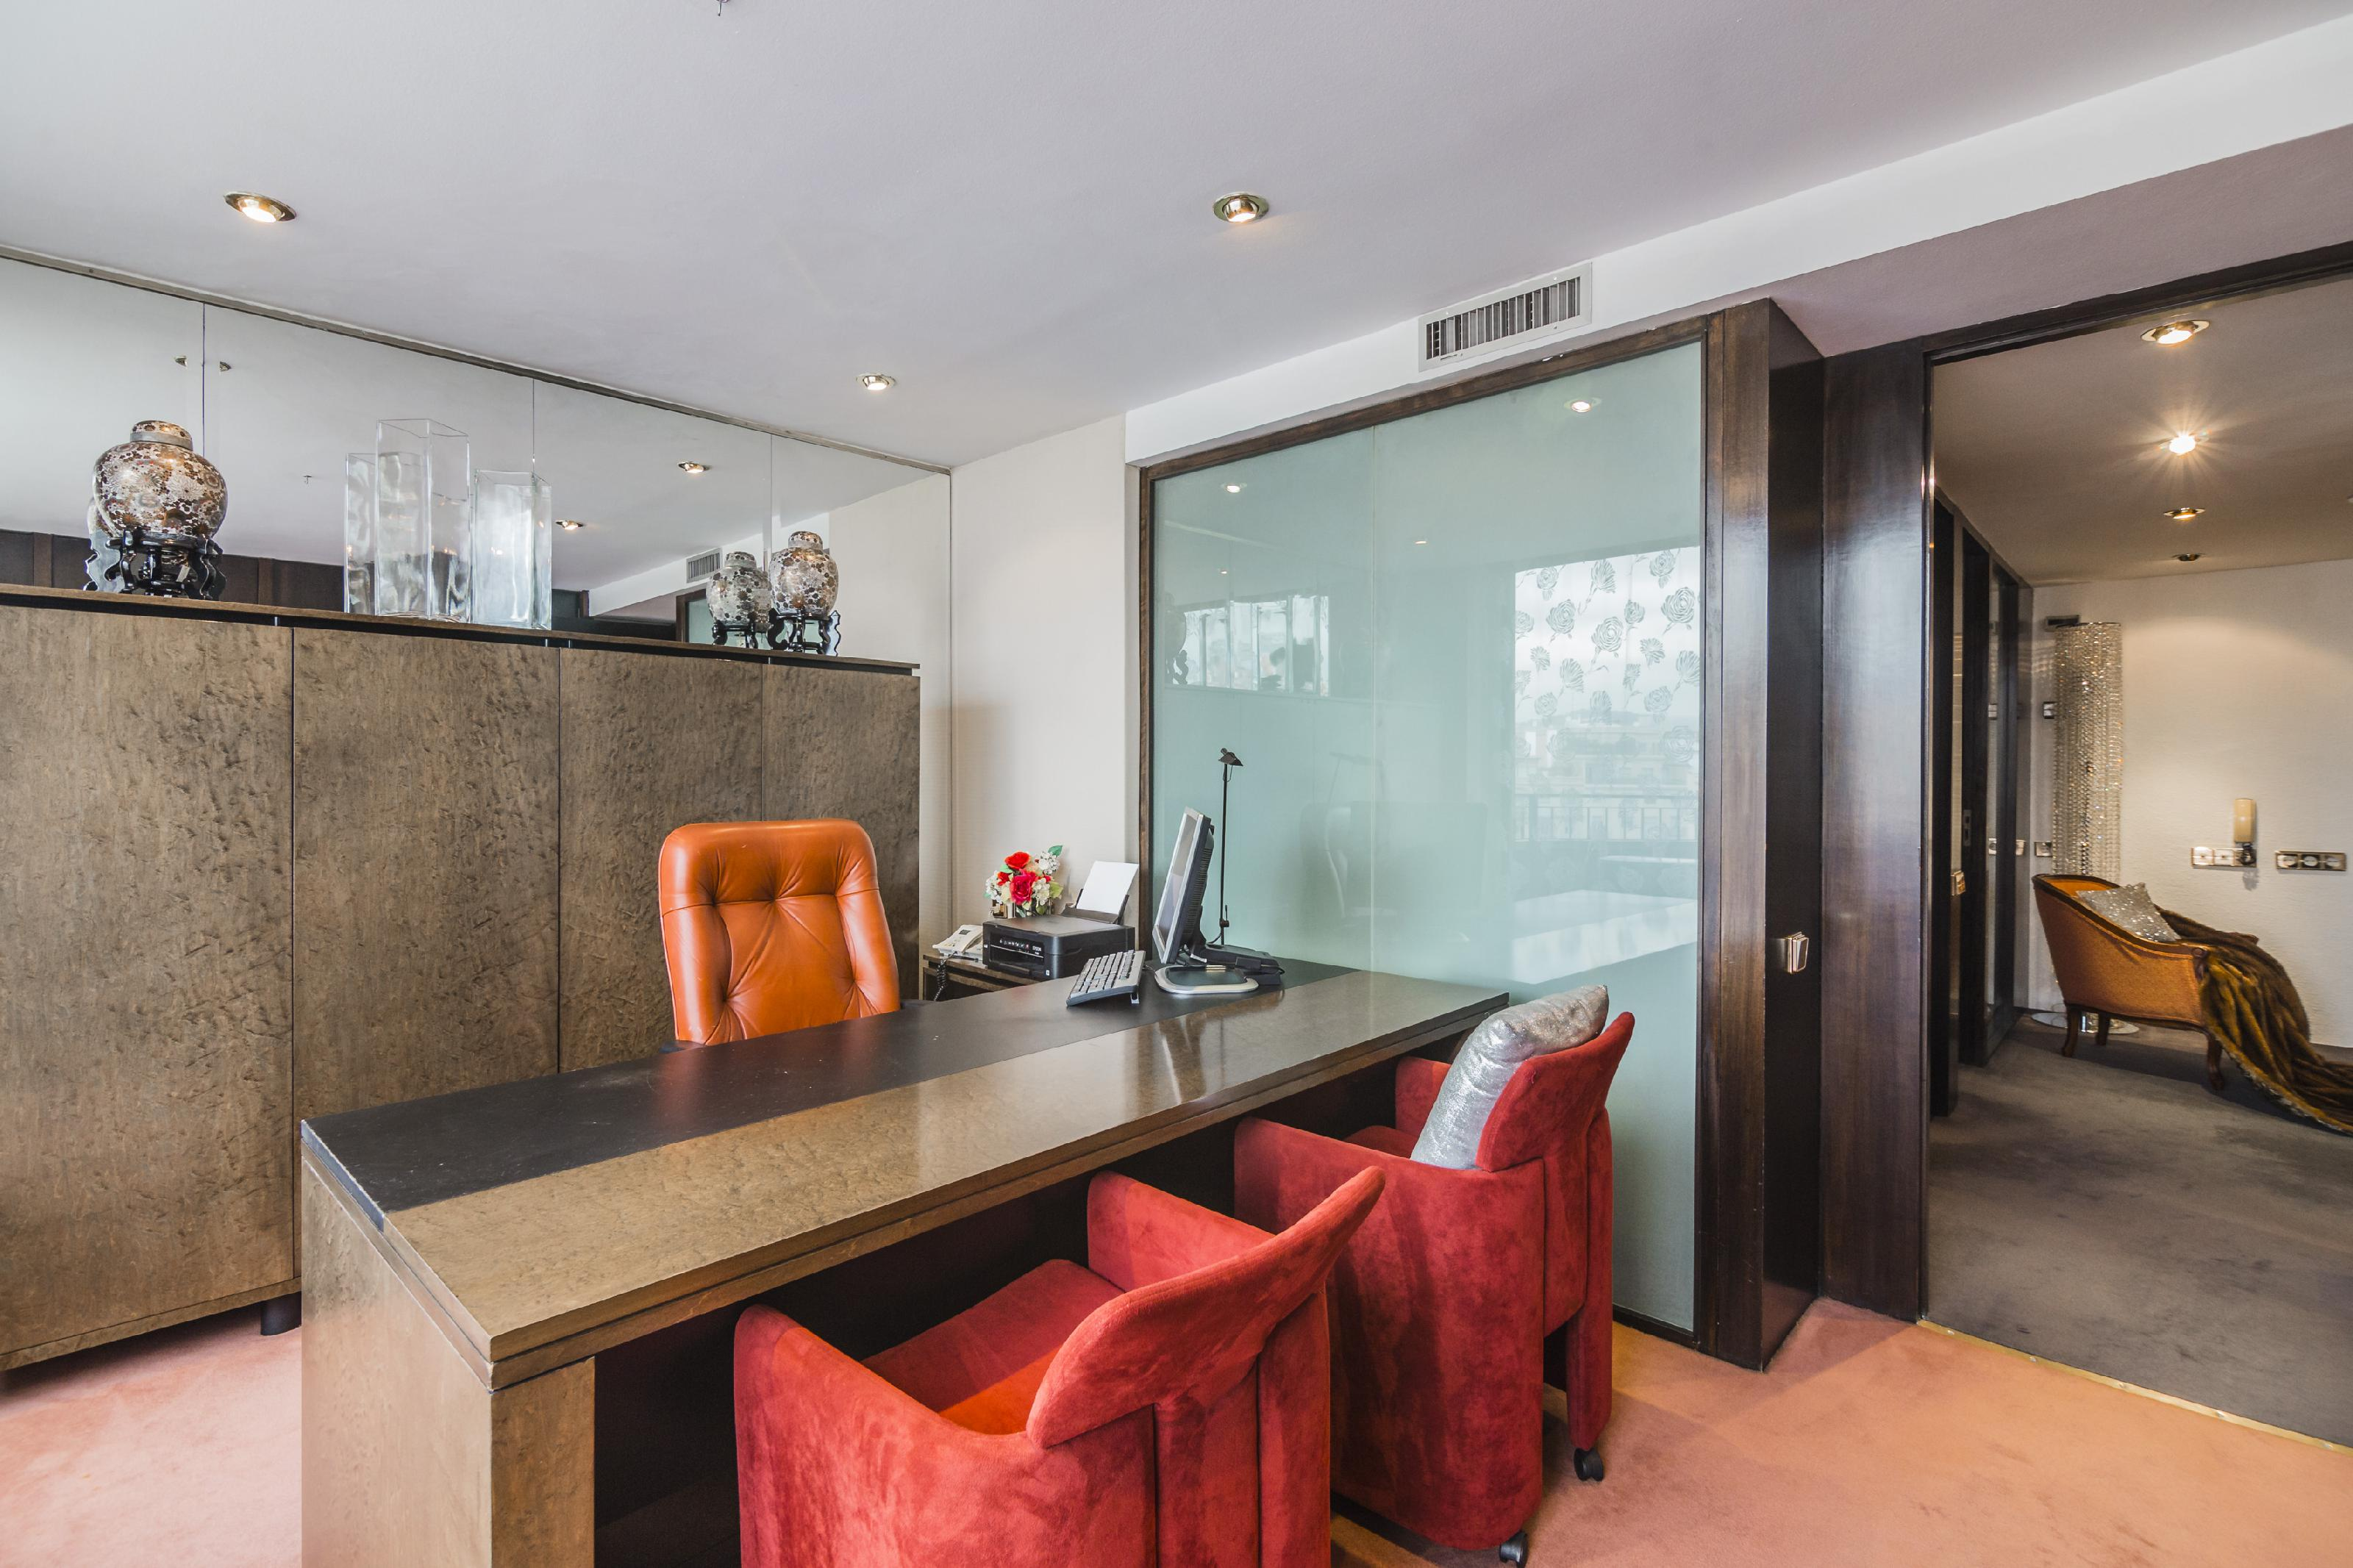 223855 Penthouse for sale in Sarrià-Sant Gervasi, Sant Gervasi-Galvany 8